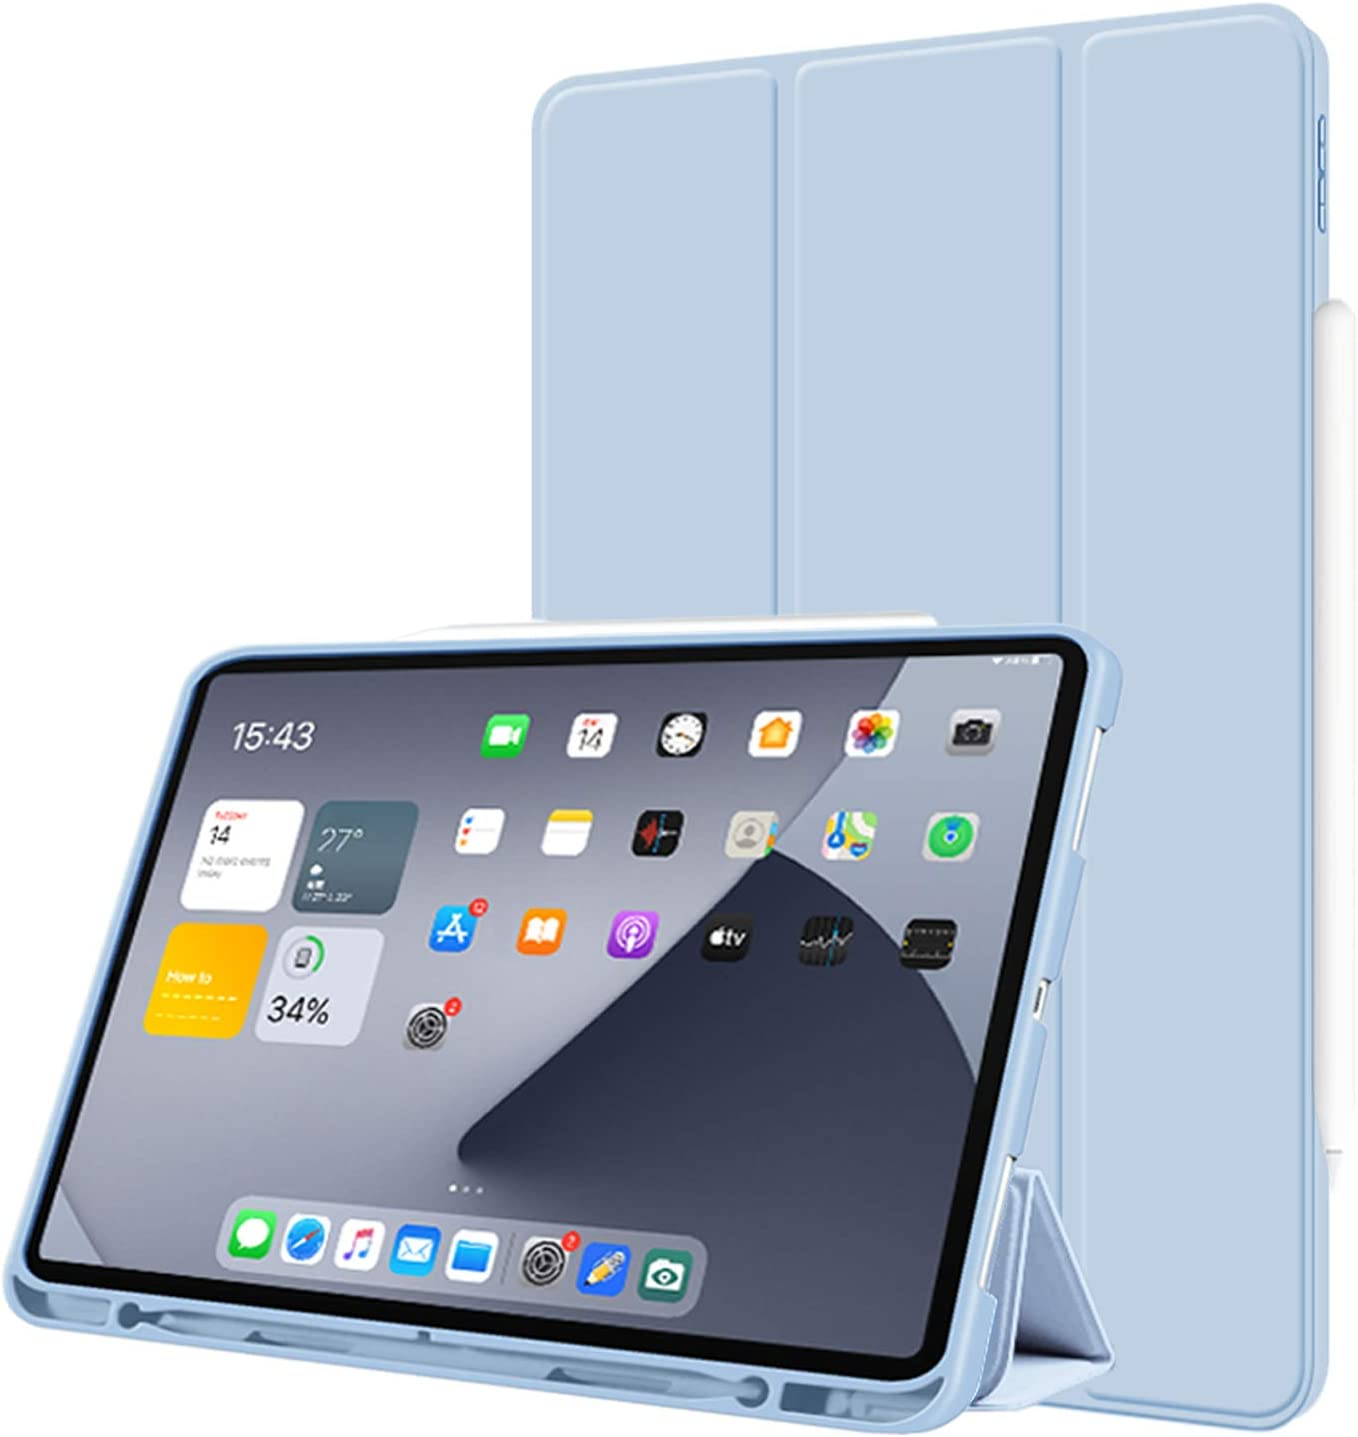 Aoub Case for ipad pro 12.9 2020(4th Generation) with Pencil Holder, Shockproof Flexible Soft TPU Back Cover with Auto Sleep/Wake, Support Apple Pencil Charging, Light Blue